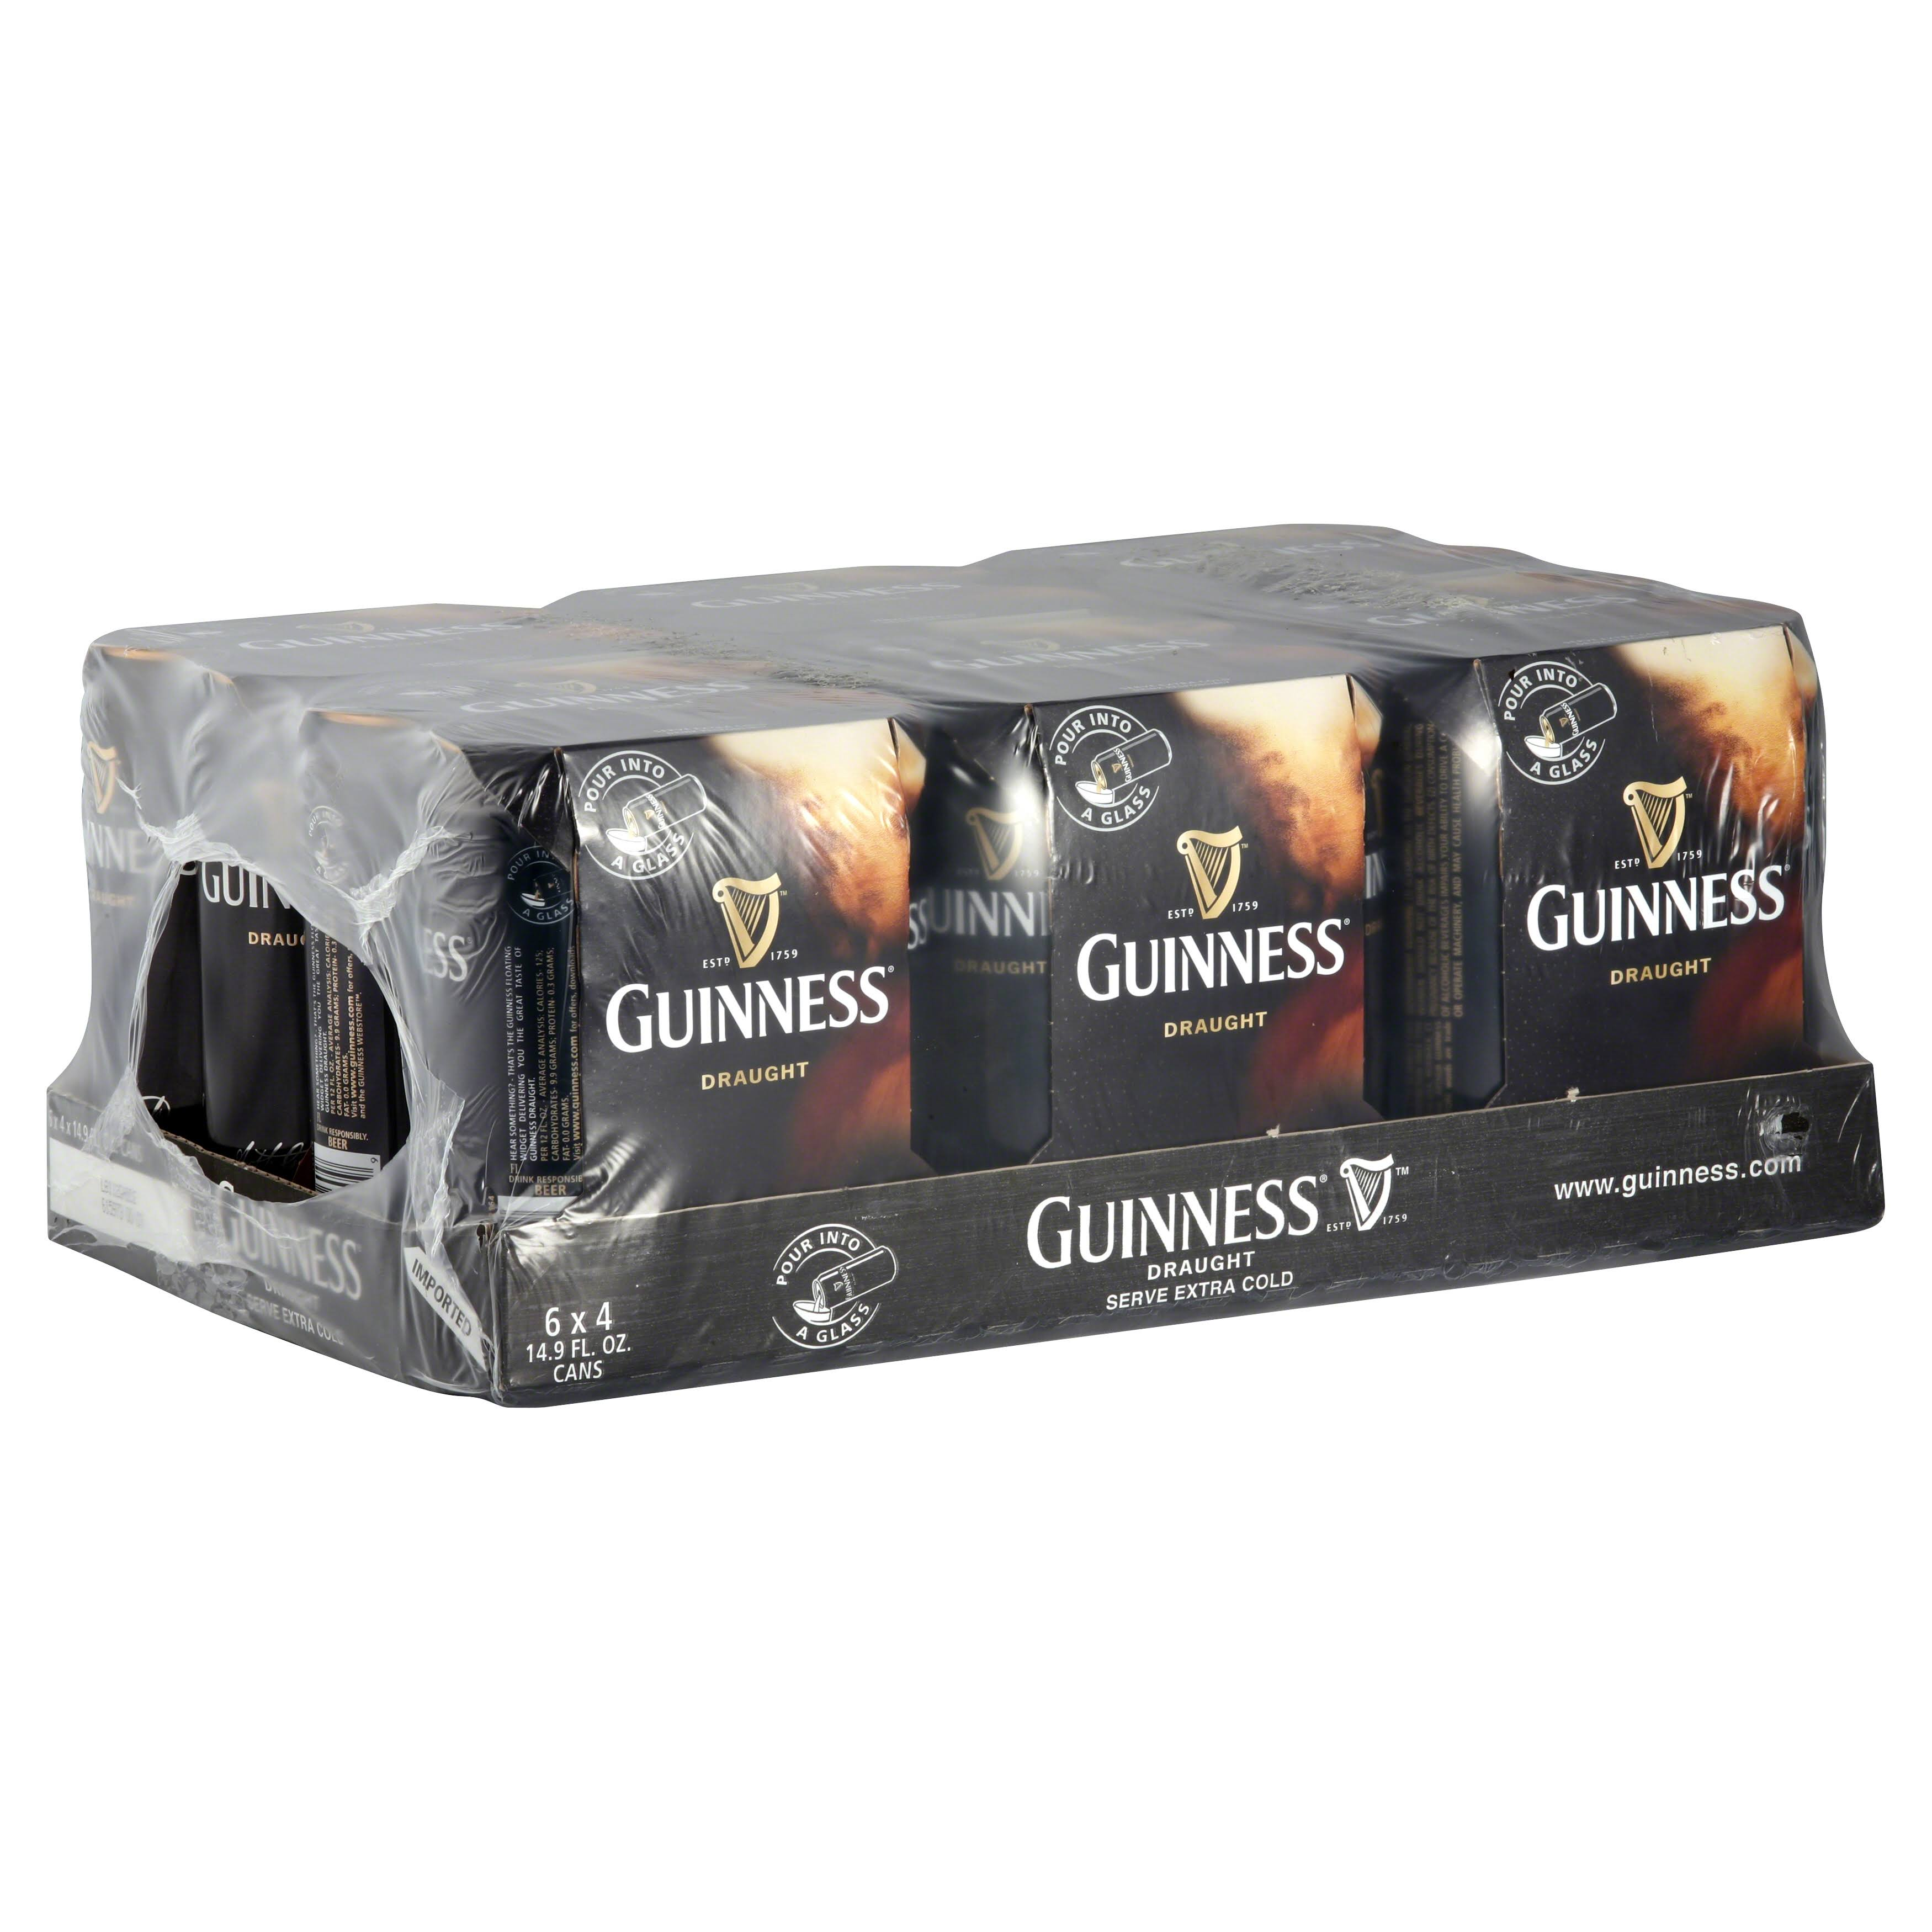 Guinness Draught Beer - 24 pack, 14.9 fl oz cans